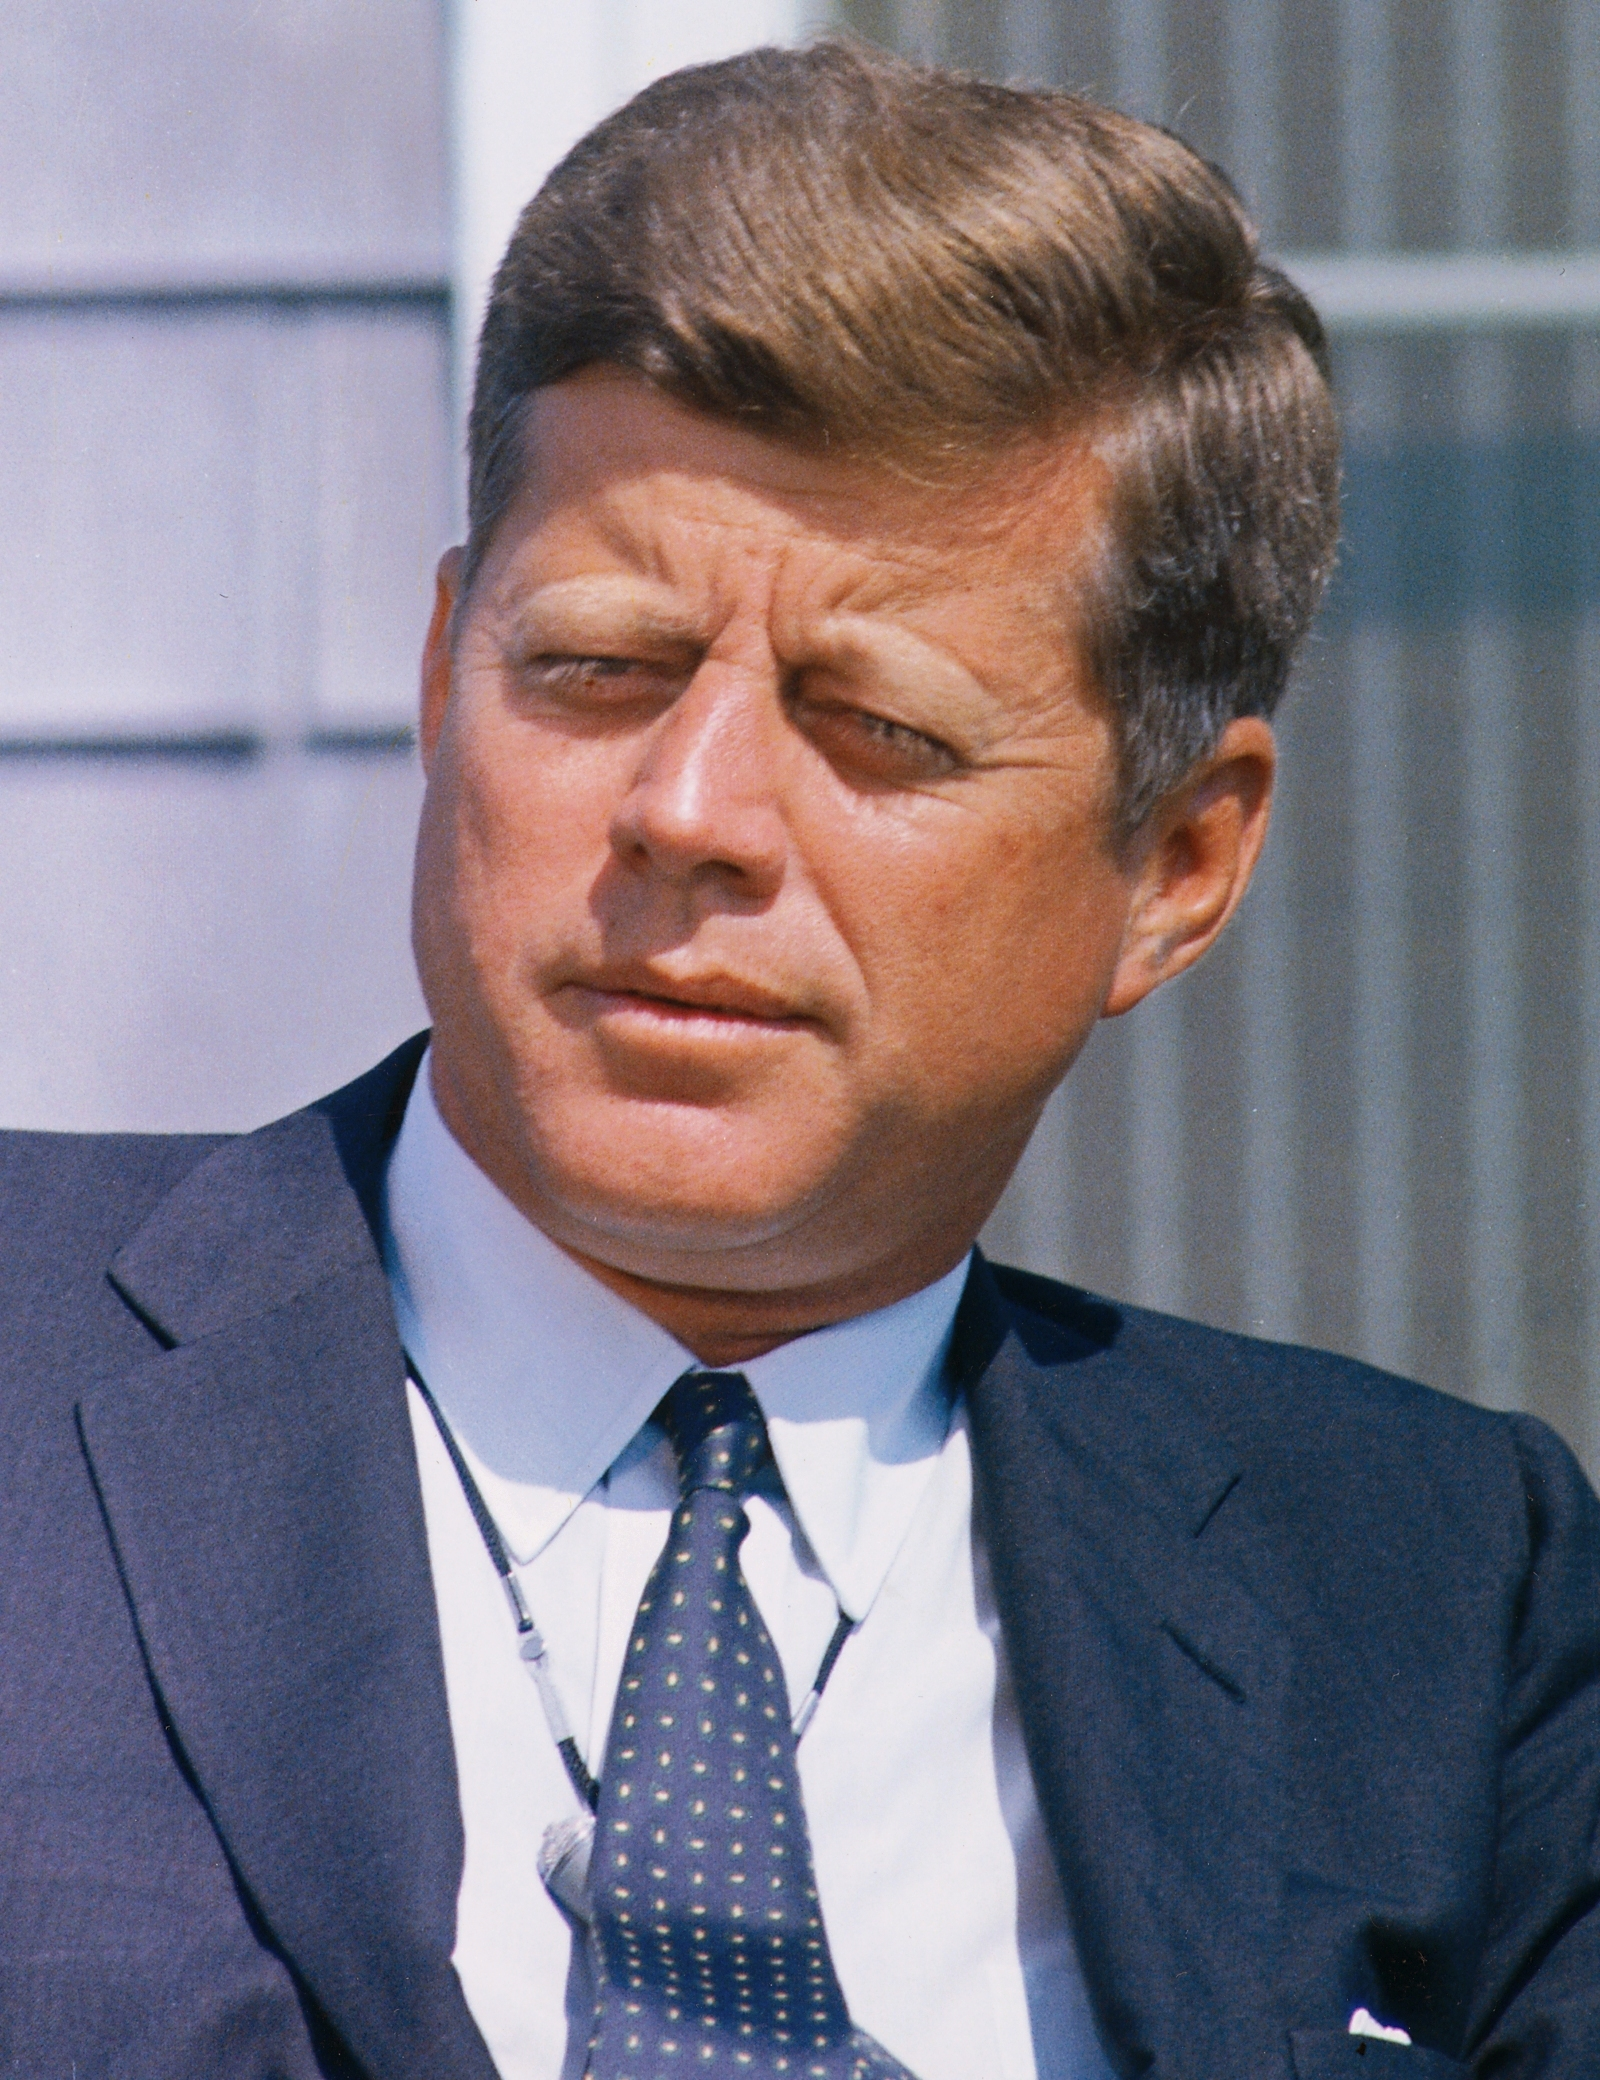 an overview of the american tragedy in 1963 for the president kennedy More than 50 years after jfk's assassination, an expert looks at the top  conspiracy theories still out there.